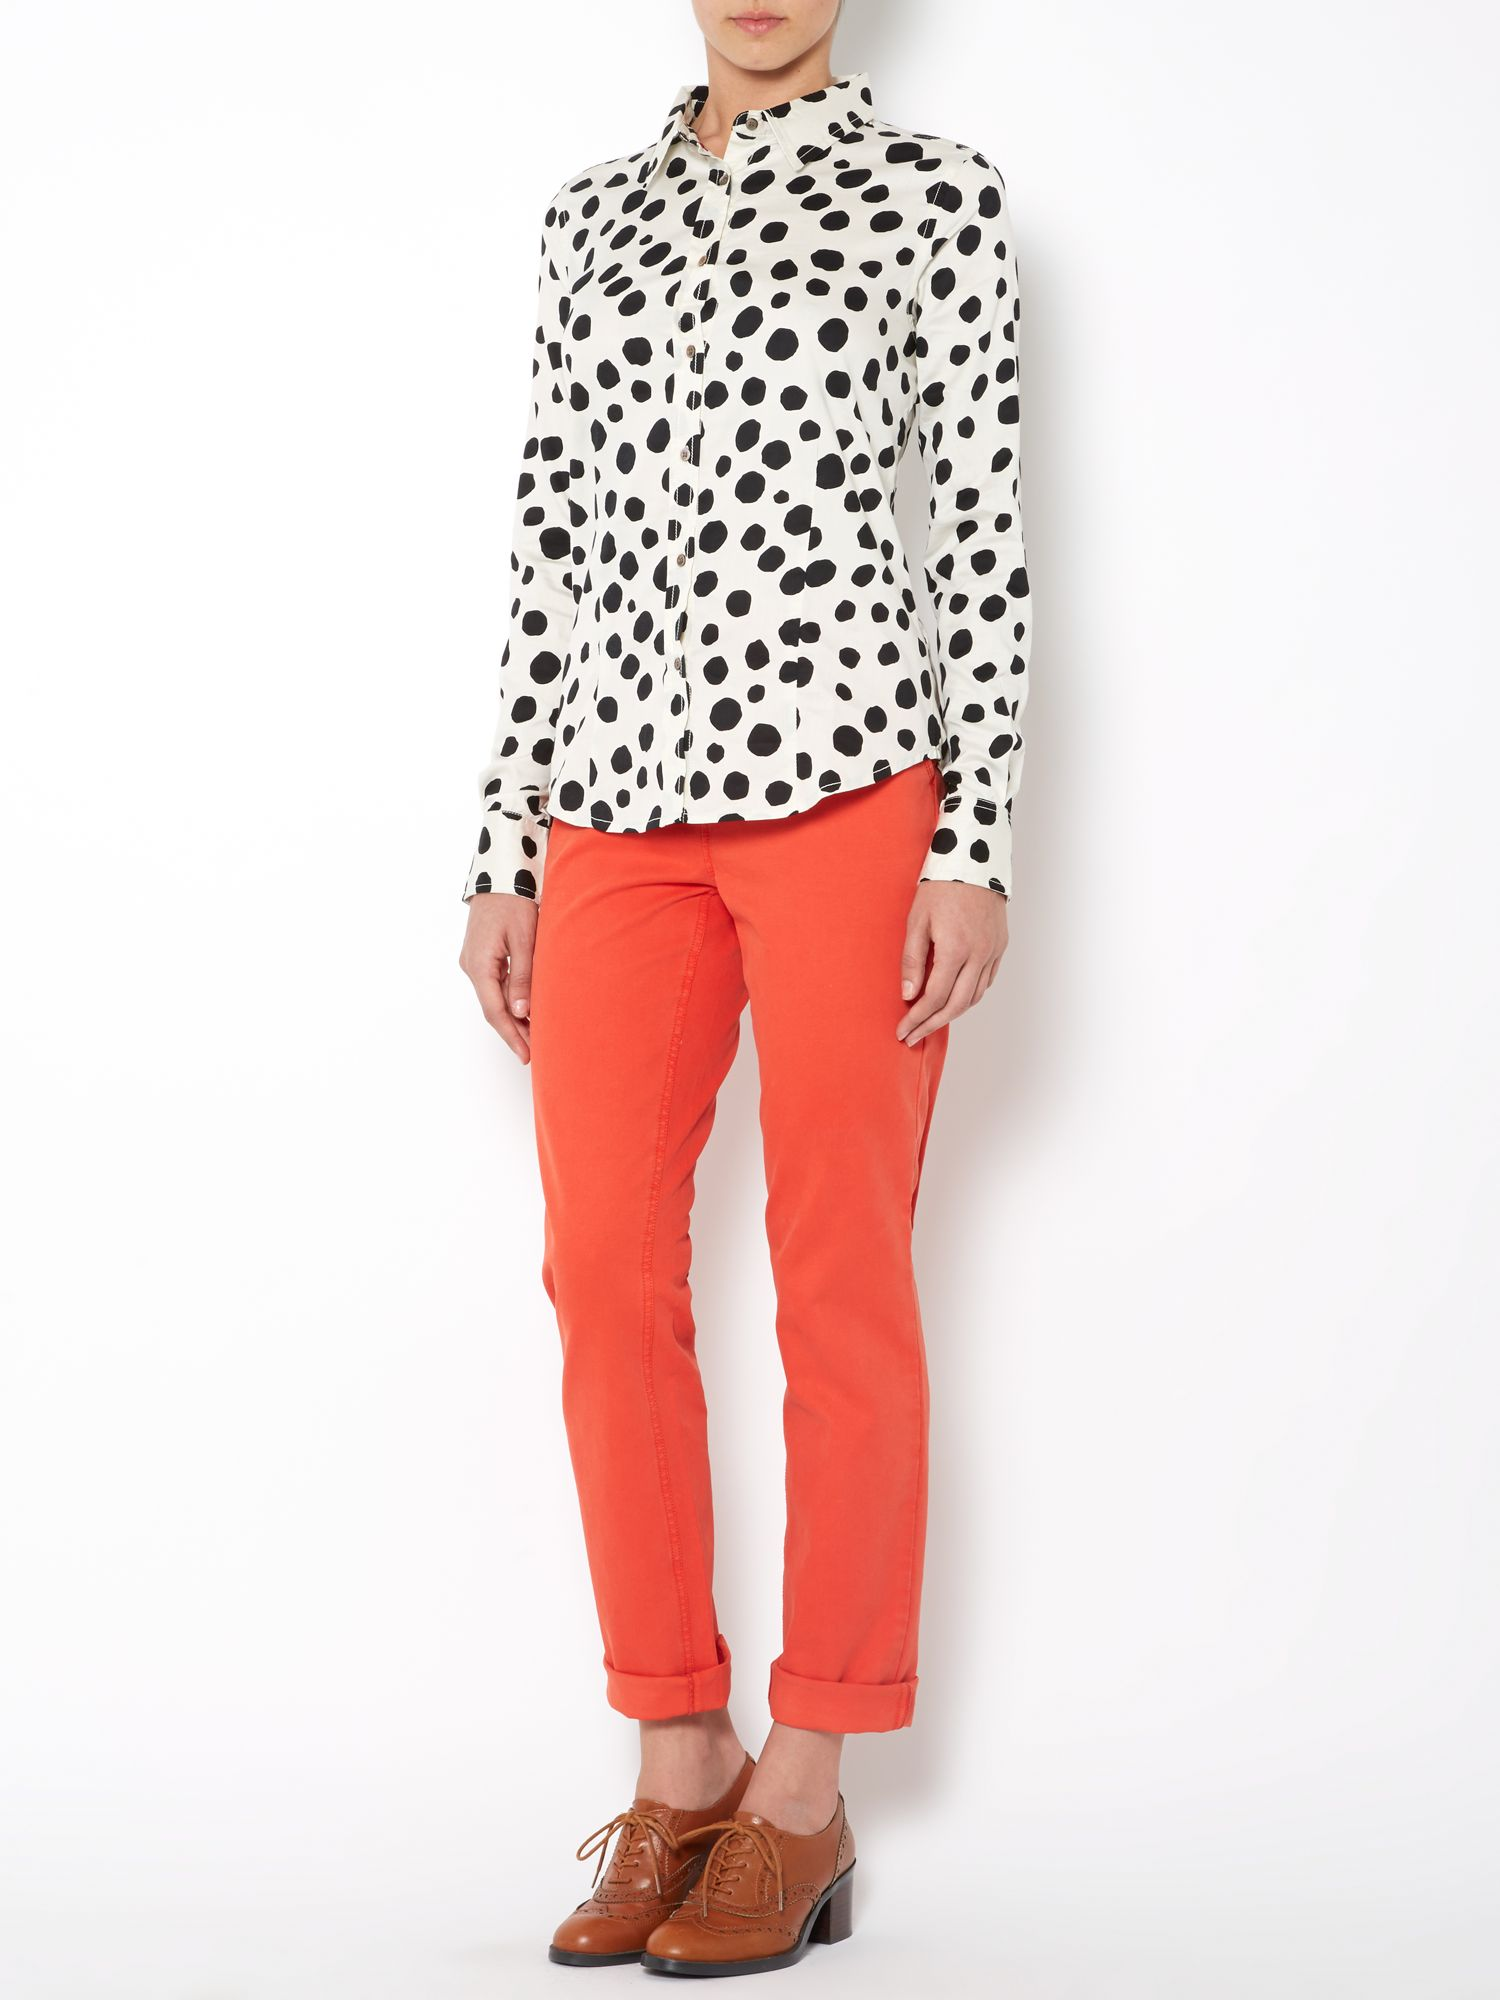 Ladies spot print shirt